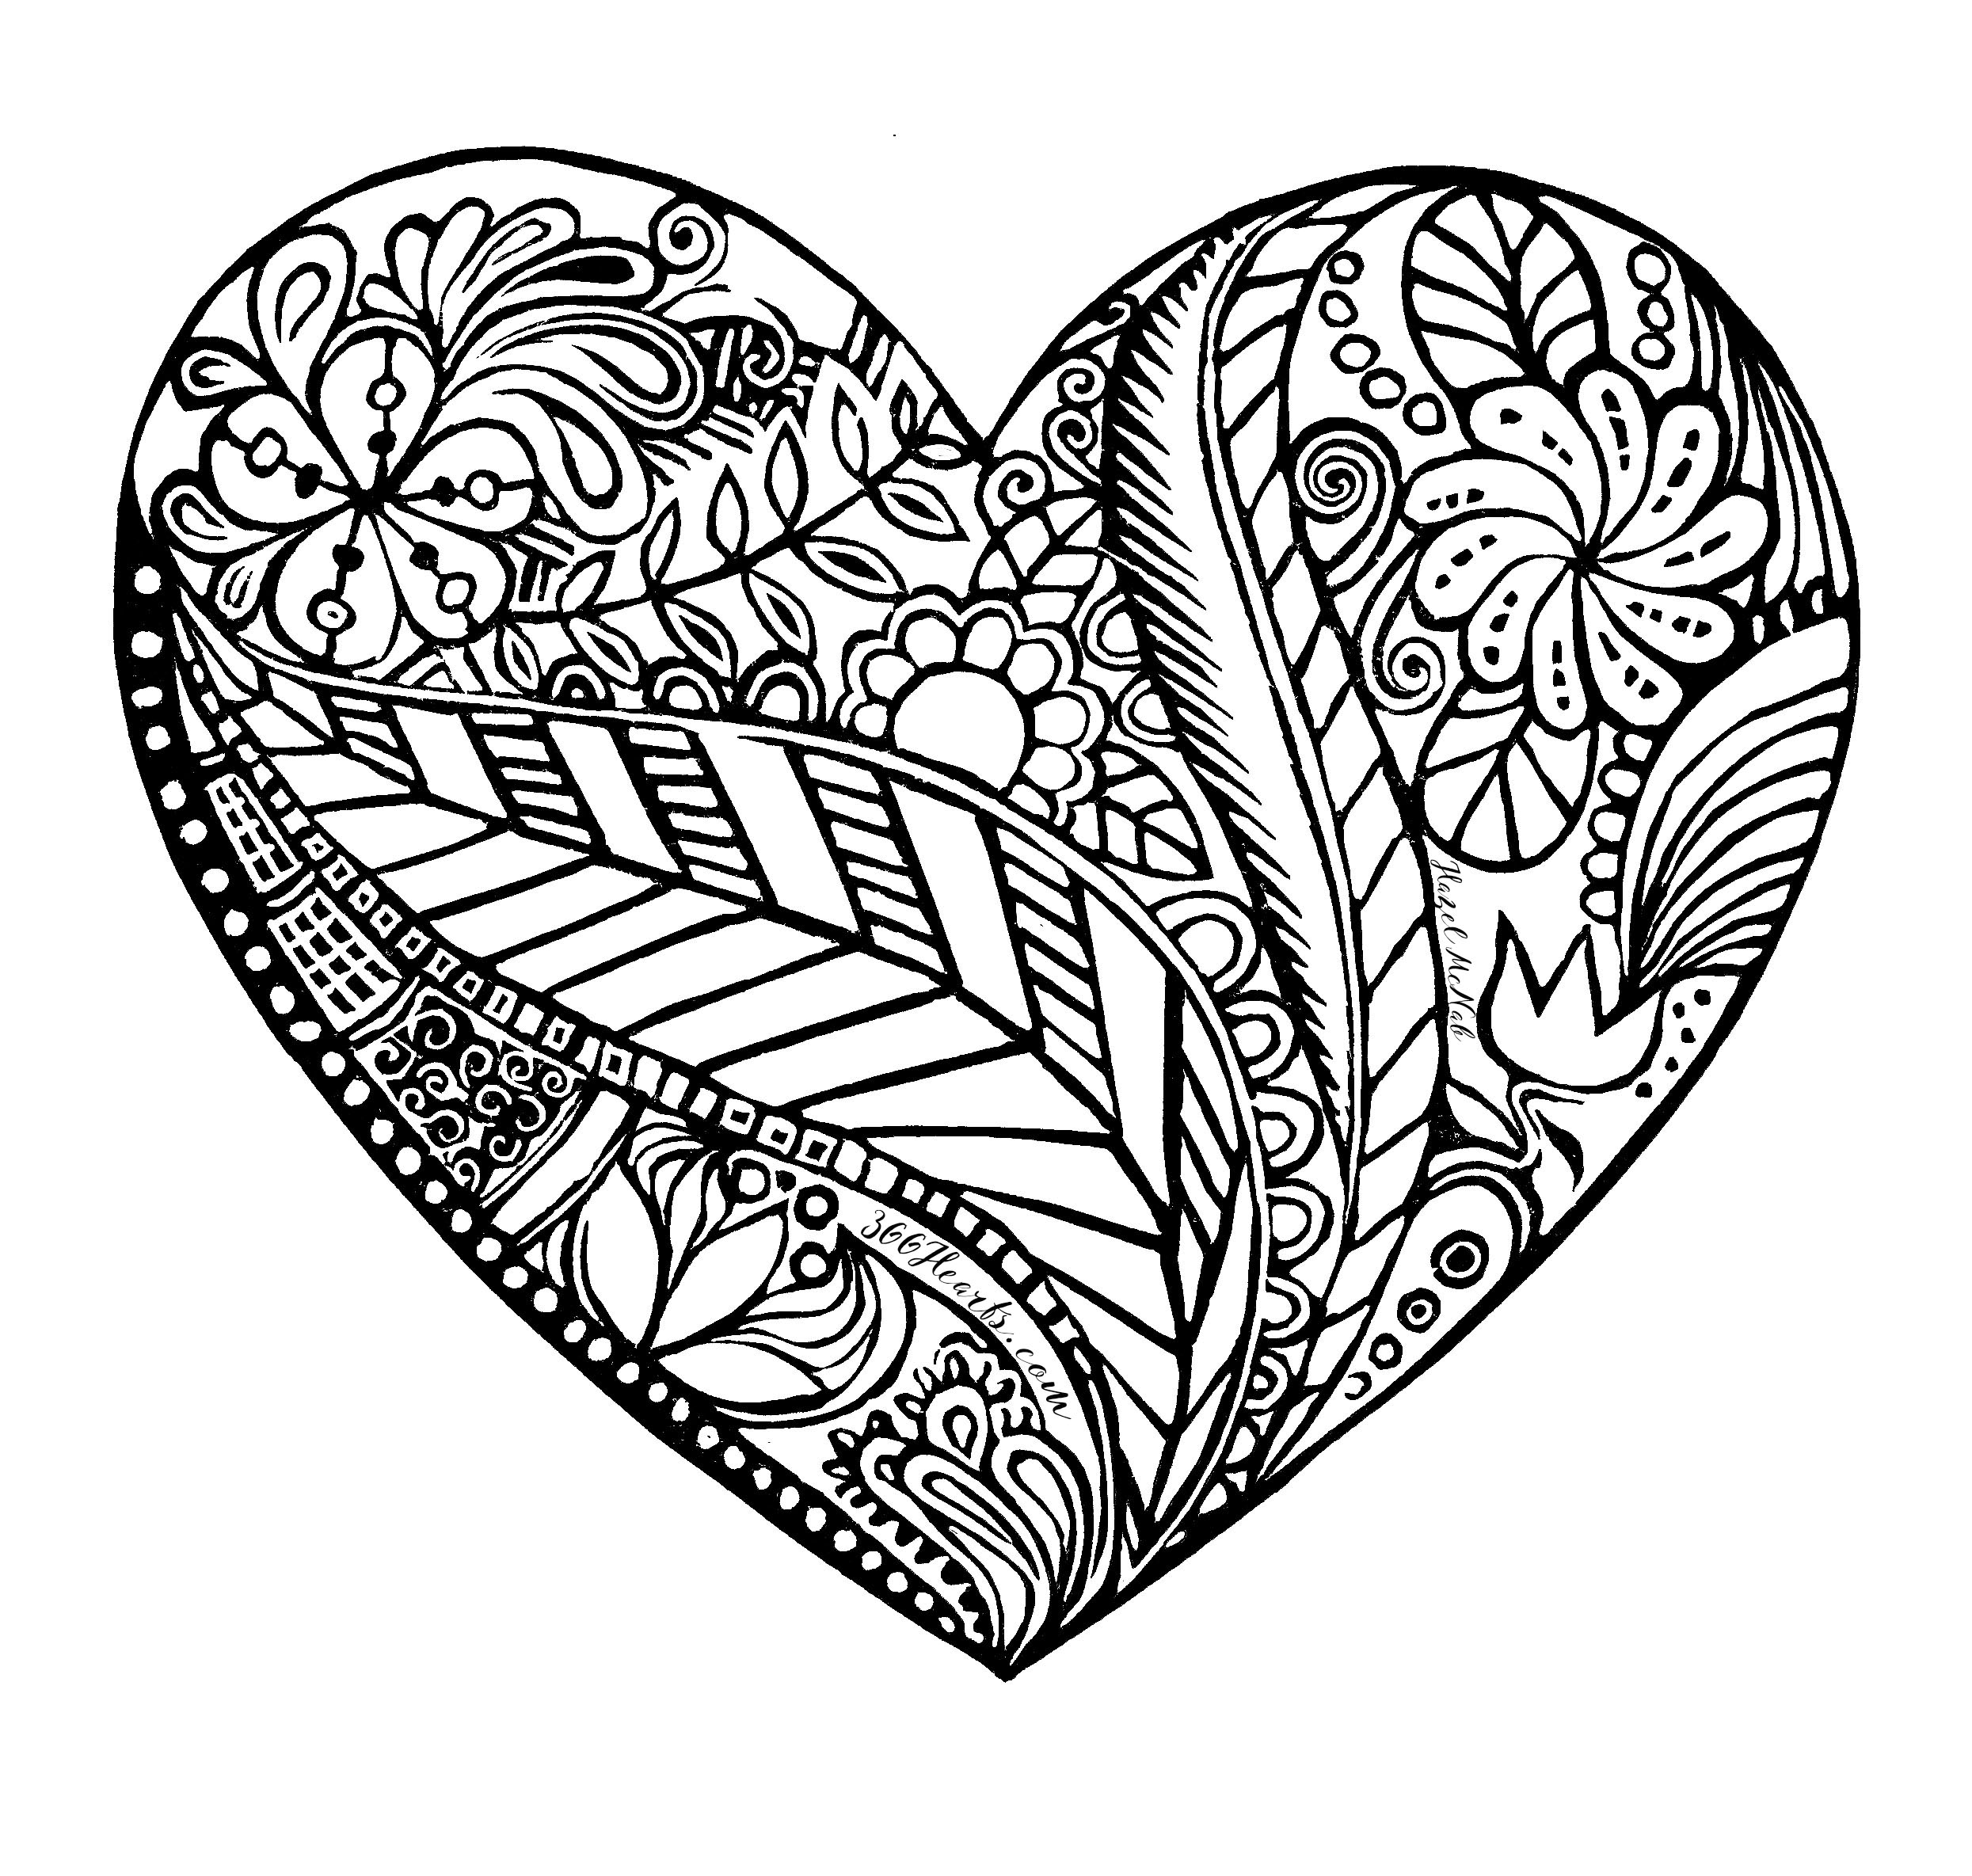 heart color page filevalentines day hearts alphabet blank1 at coloring heart page color